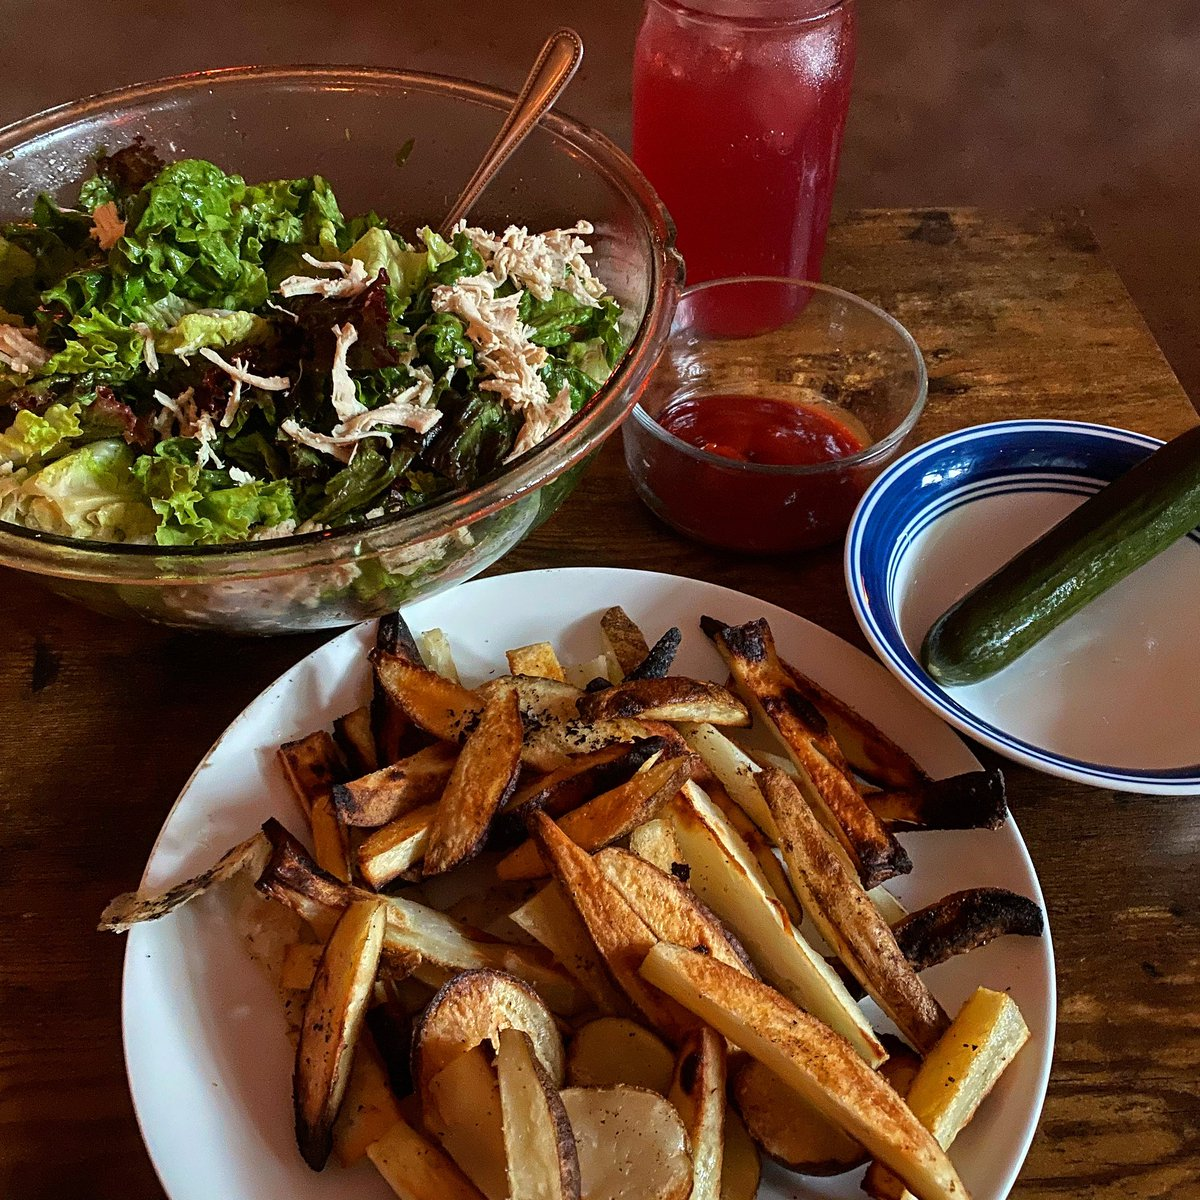 """@wallacefarmsofficial slow roasted turkey on The Big Salad with home made dressing. 5 cloves of garlic. Home made fries: potatoes broiled in @wallacefarmsofficial lard. Home made pickles. Kombucha.   Our immune systems end """"pandemics.""""   #ourimmunesystemsendpandemics<br>http://pic.twitter.com/R1MItJTHe5"""